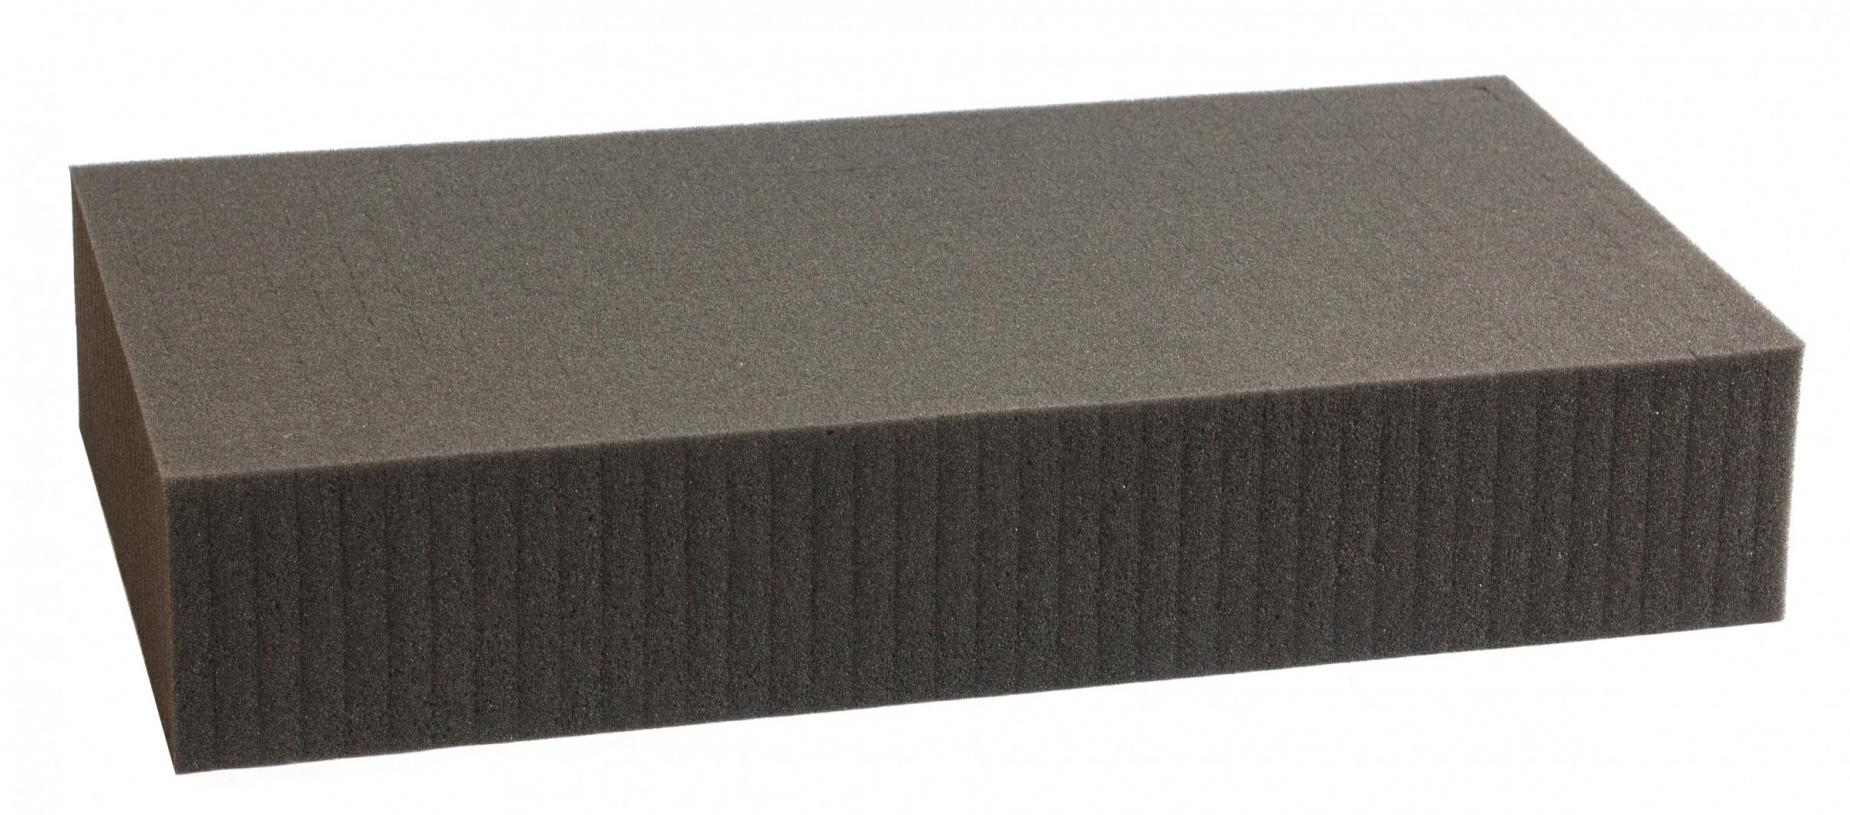 1000 mm x 500 mm x 90 mm - Raster 15 mm - Pick and Pluck / Pre-Cubed foam tray